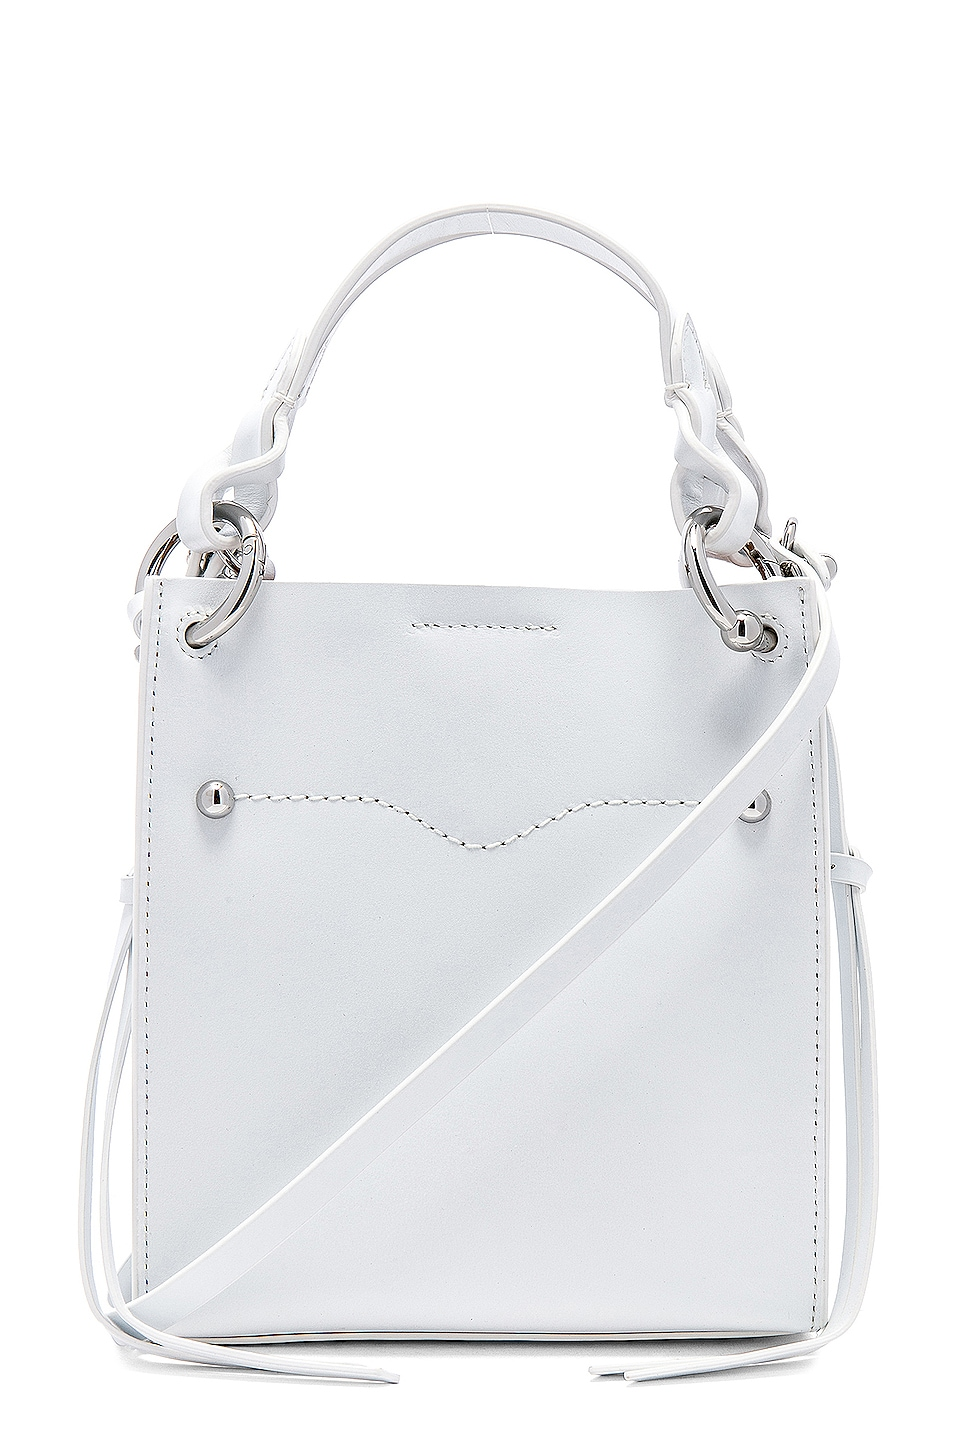 Rebecca Minkoff Kate Mini Tote in Optic White